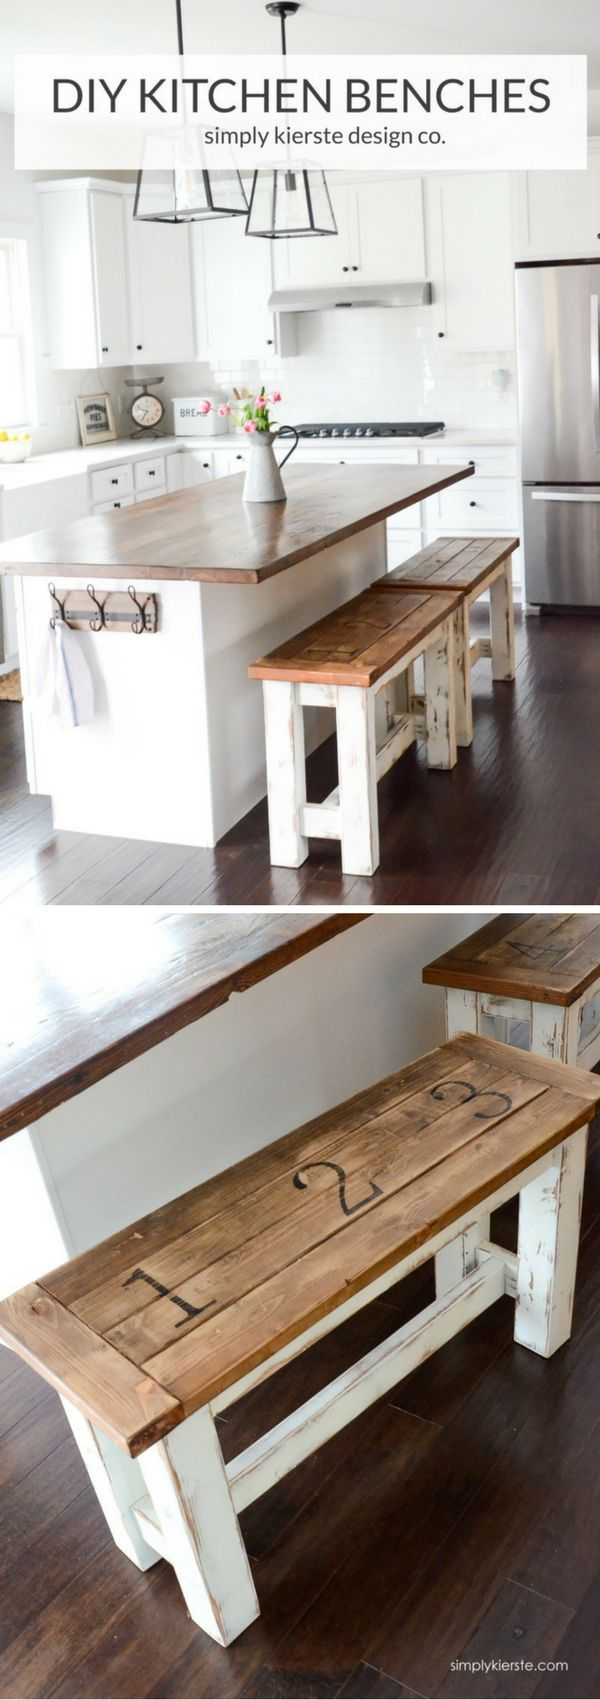 17 Easy DIY Benches That You Can Build Yourself | Cocinas, Bricolaje ...